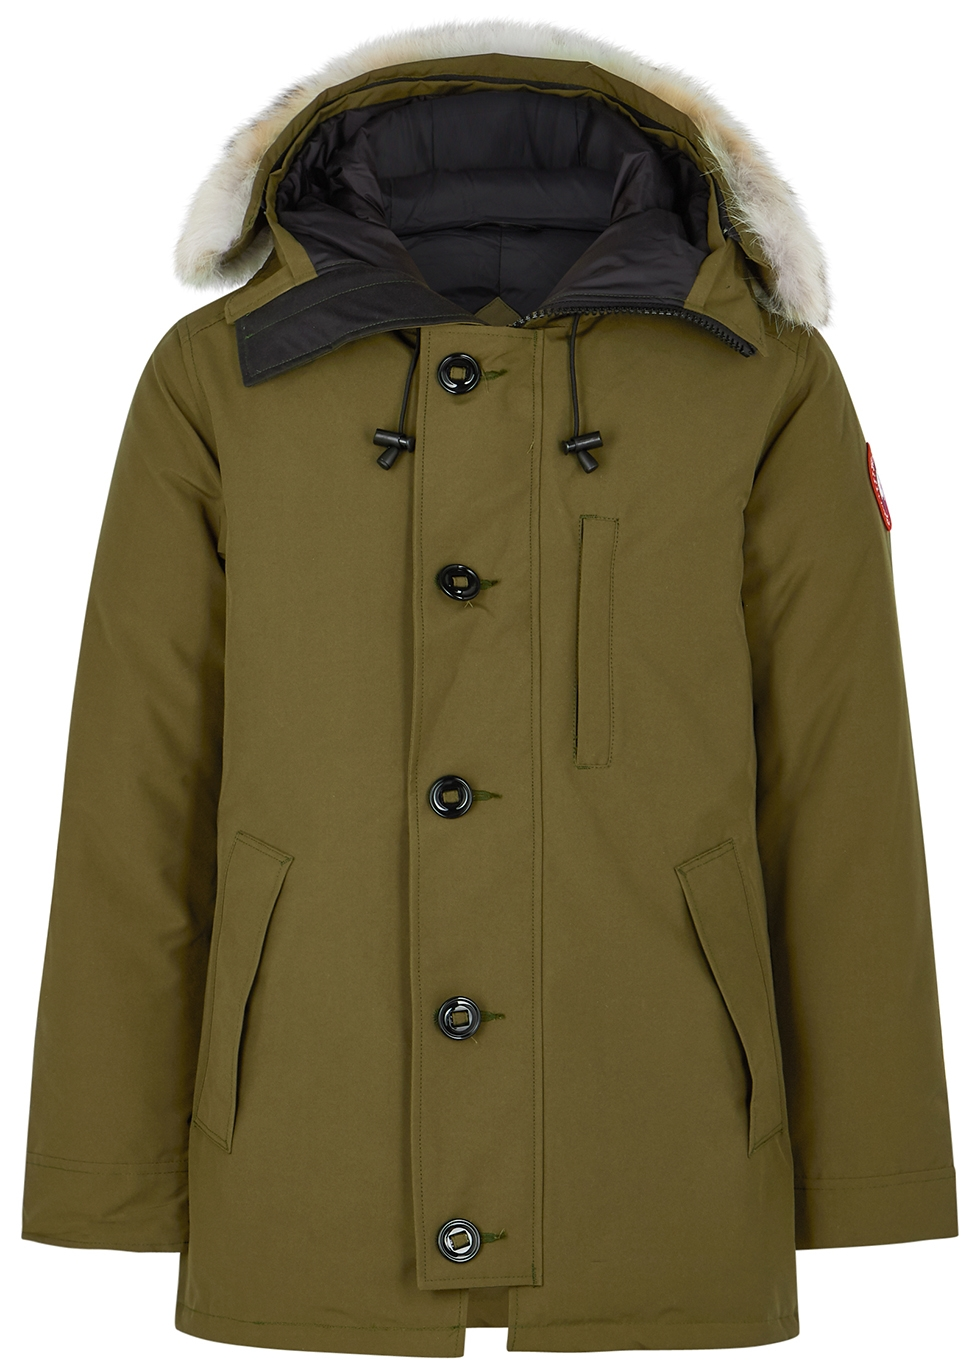 Chateau Fusion Fit army green Arctic-Tech parka